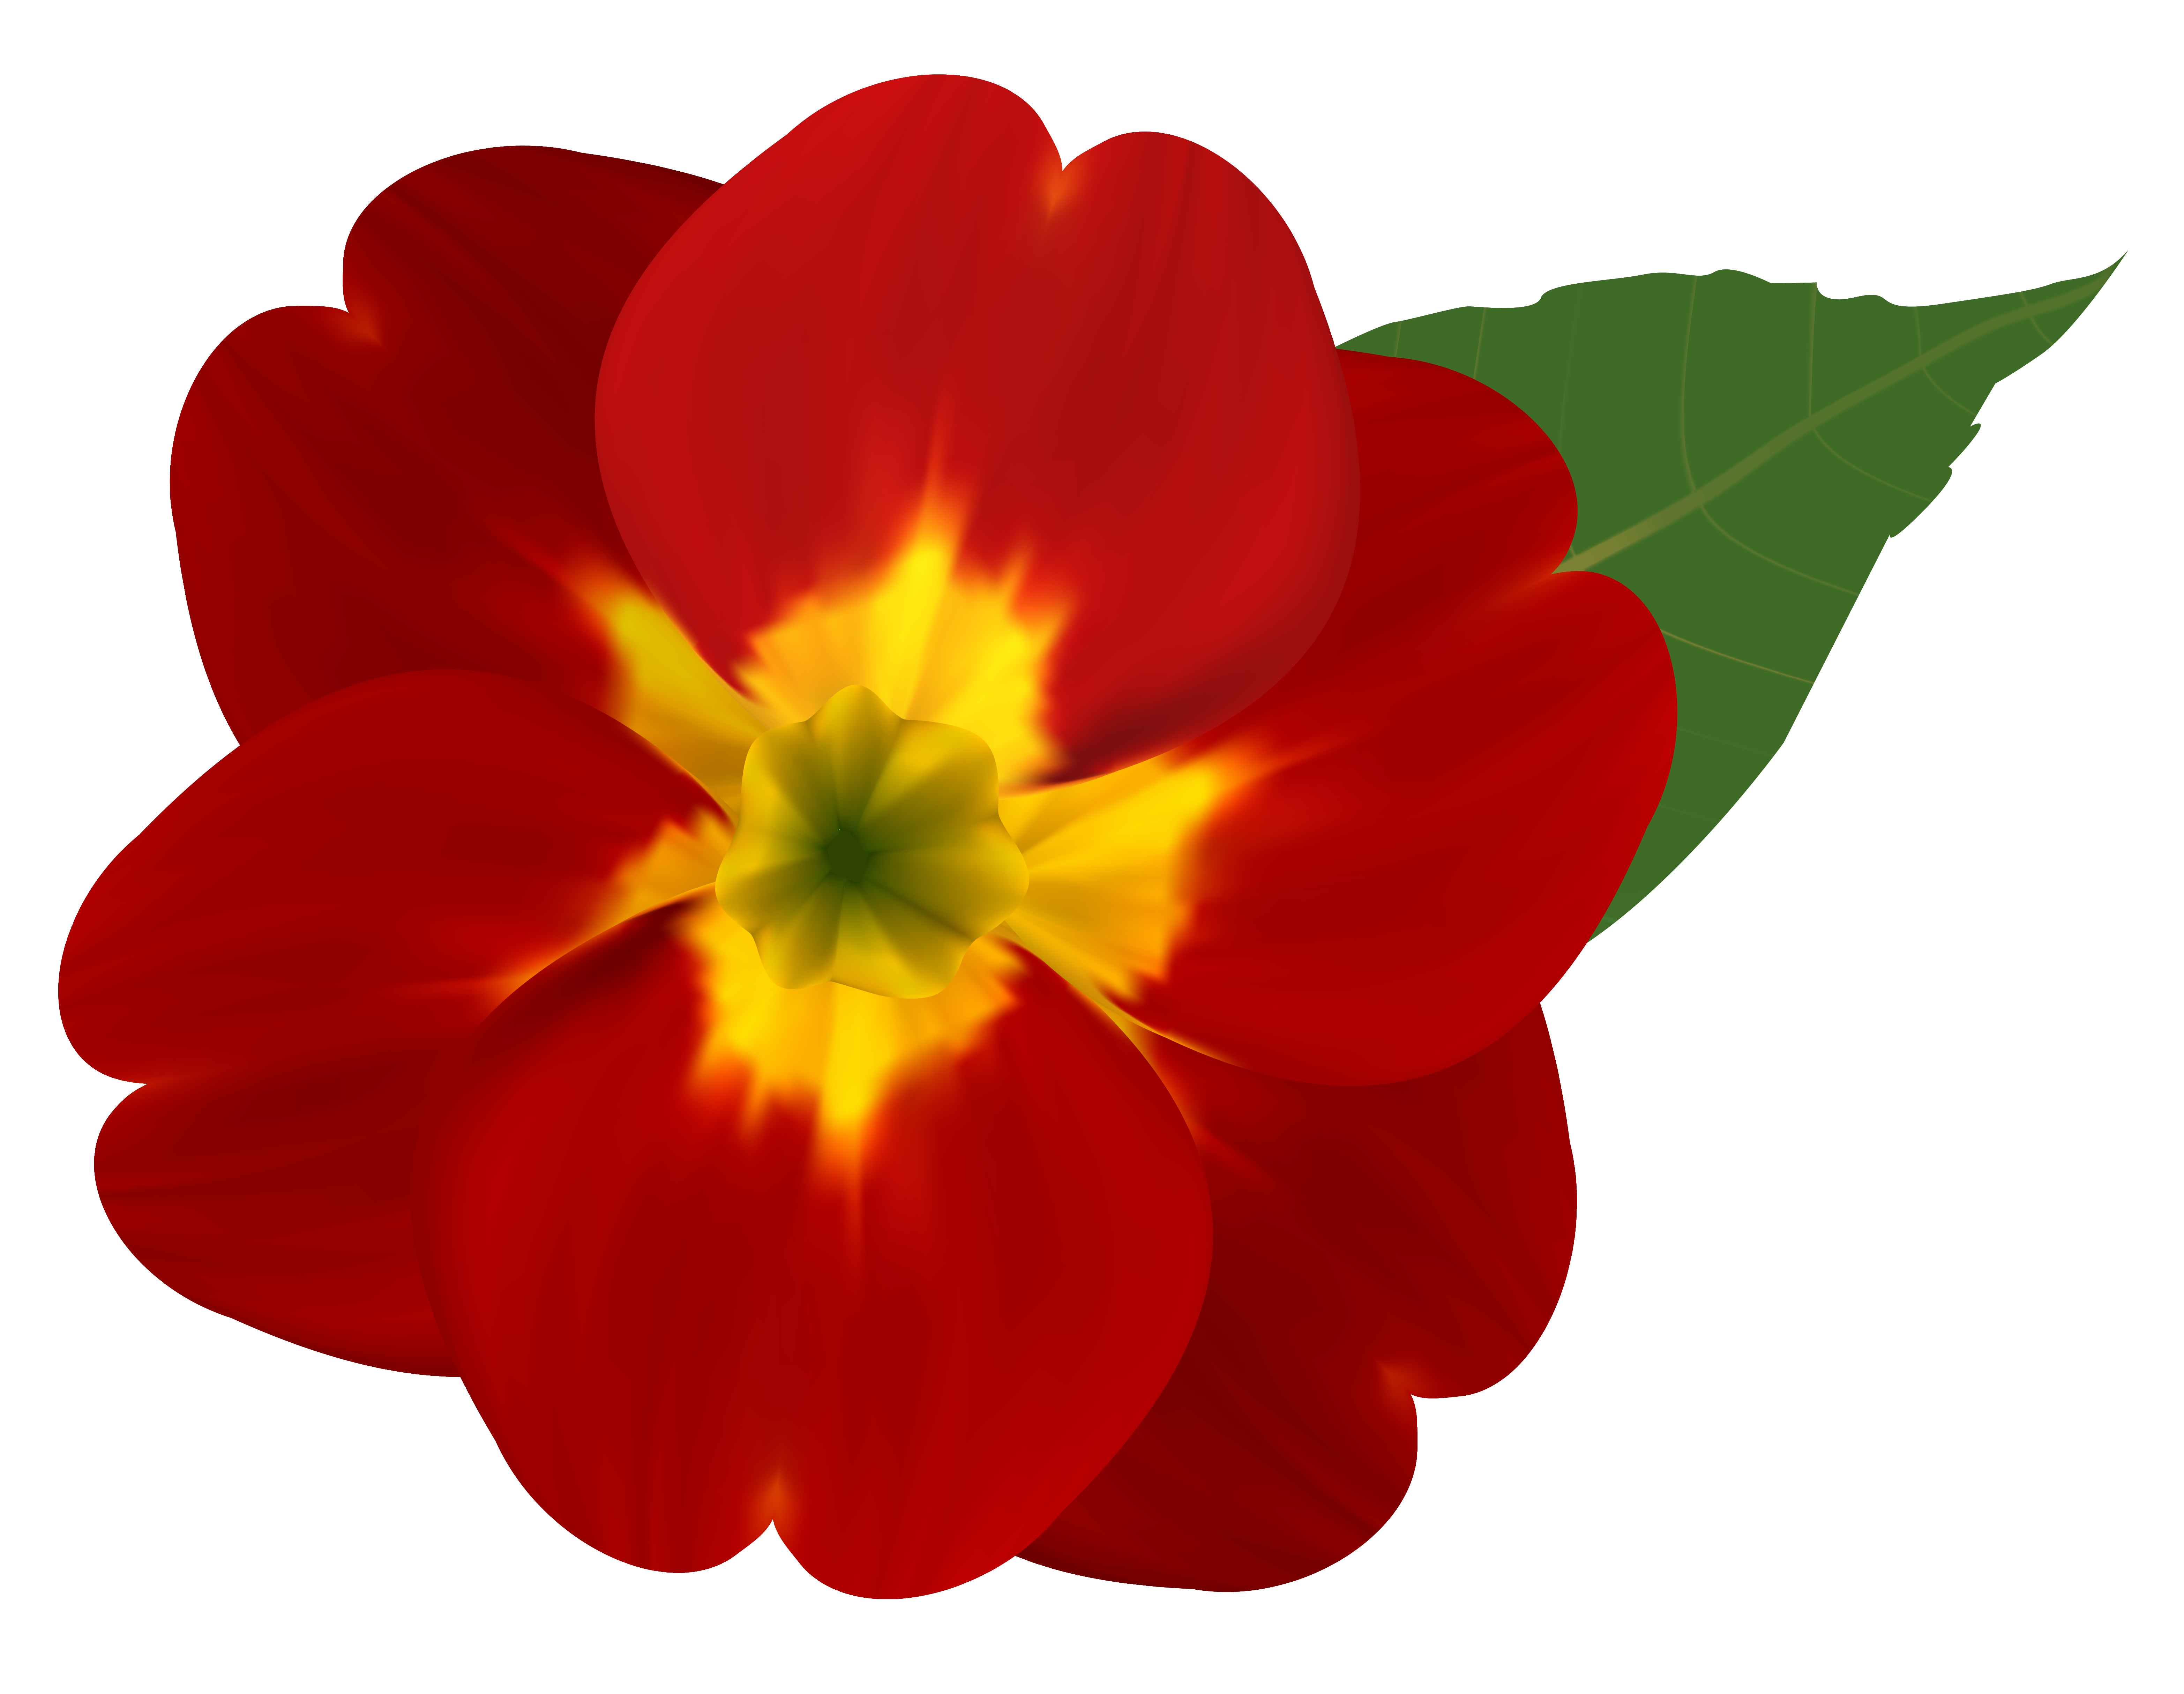 Red and Yellow Flower PNG Clipart Image.